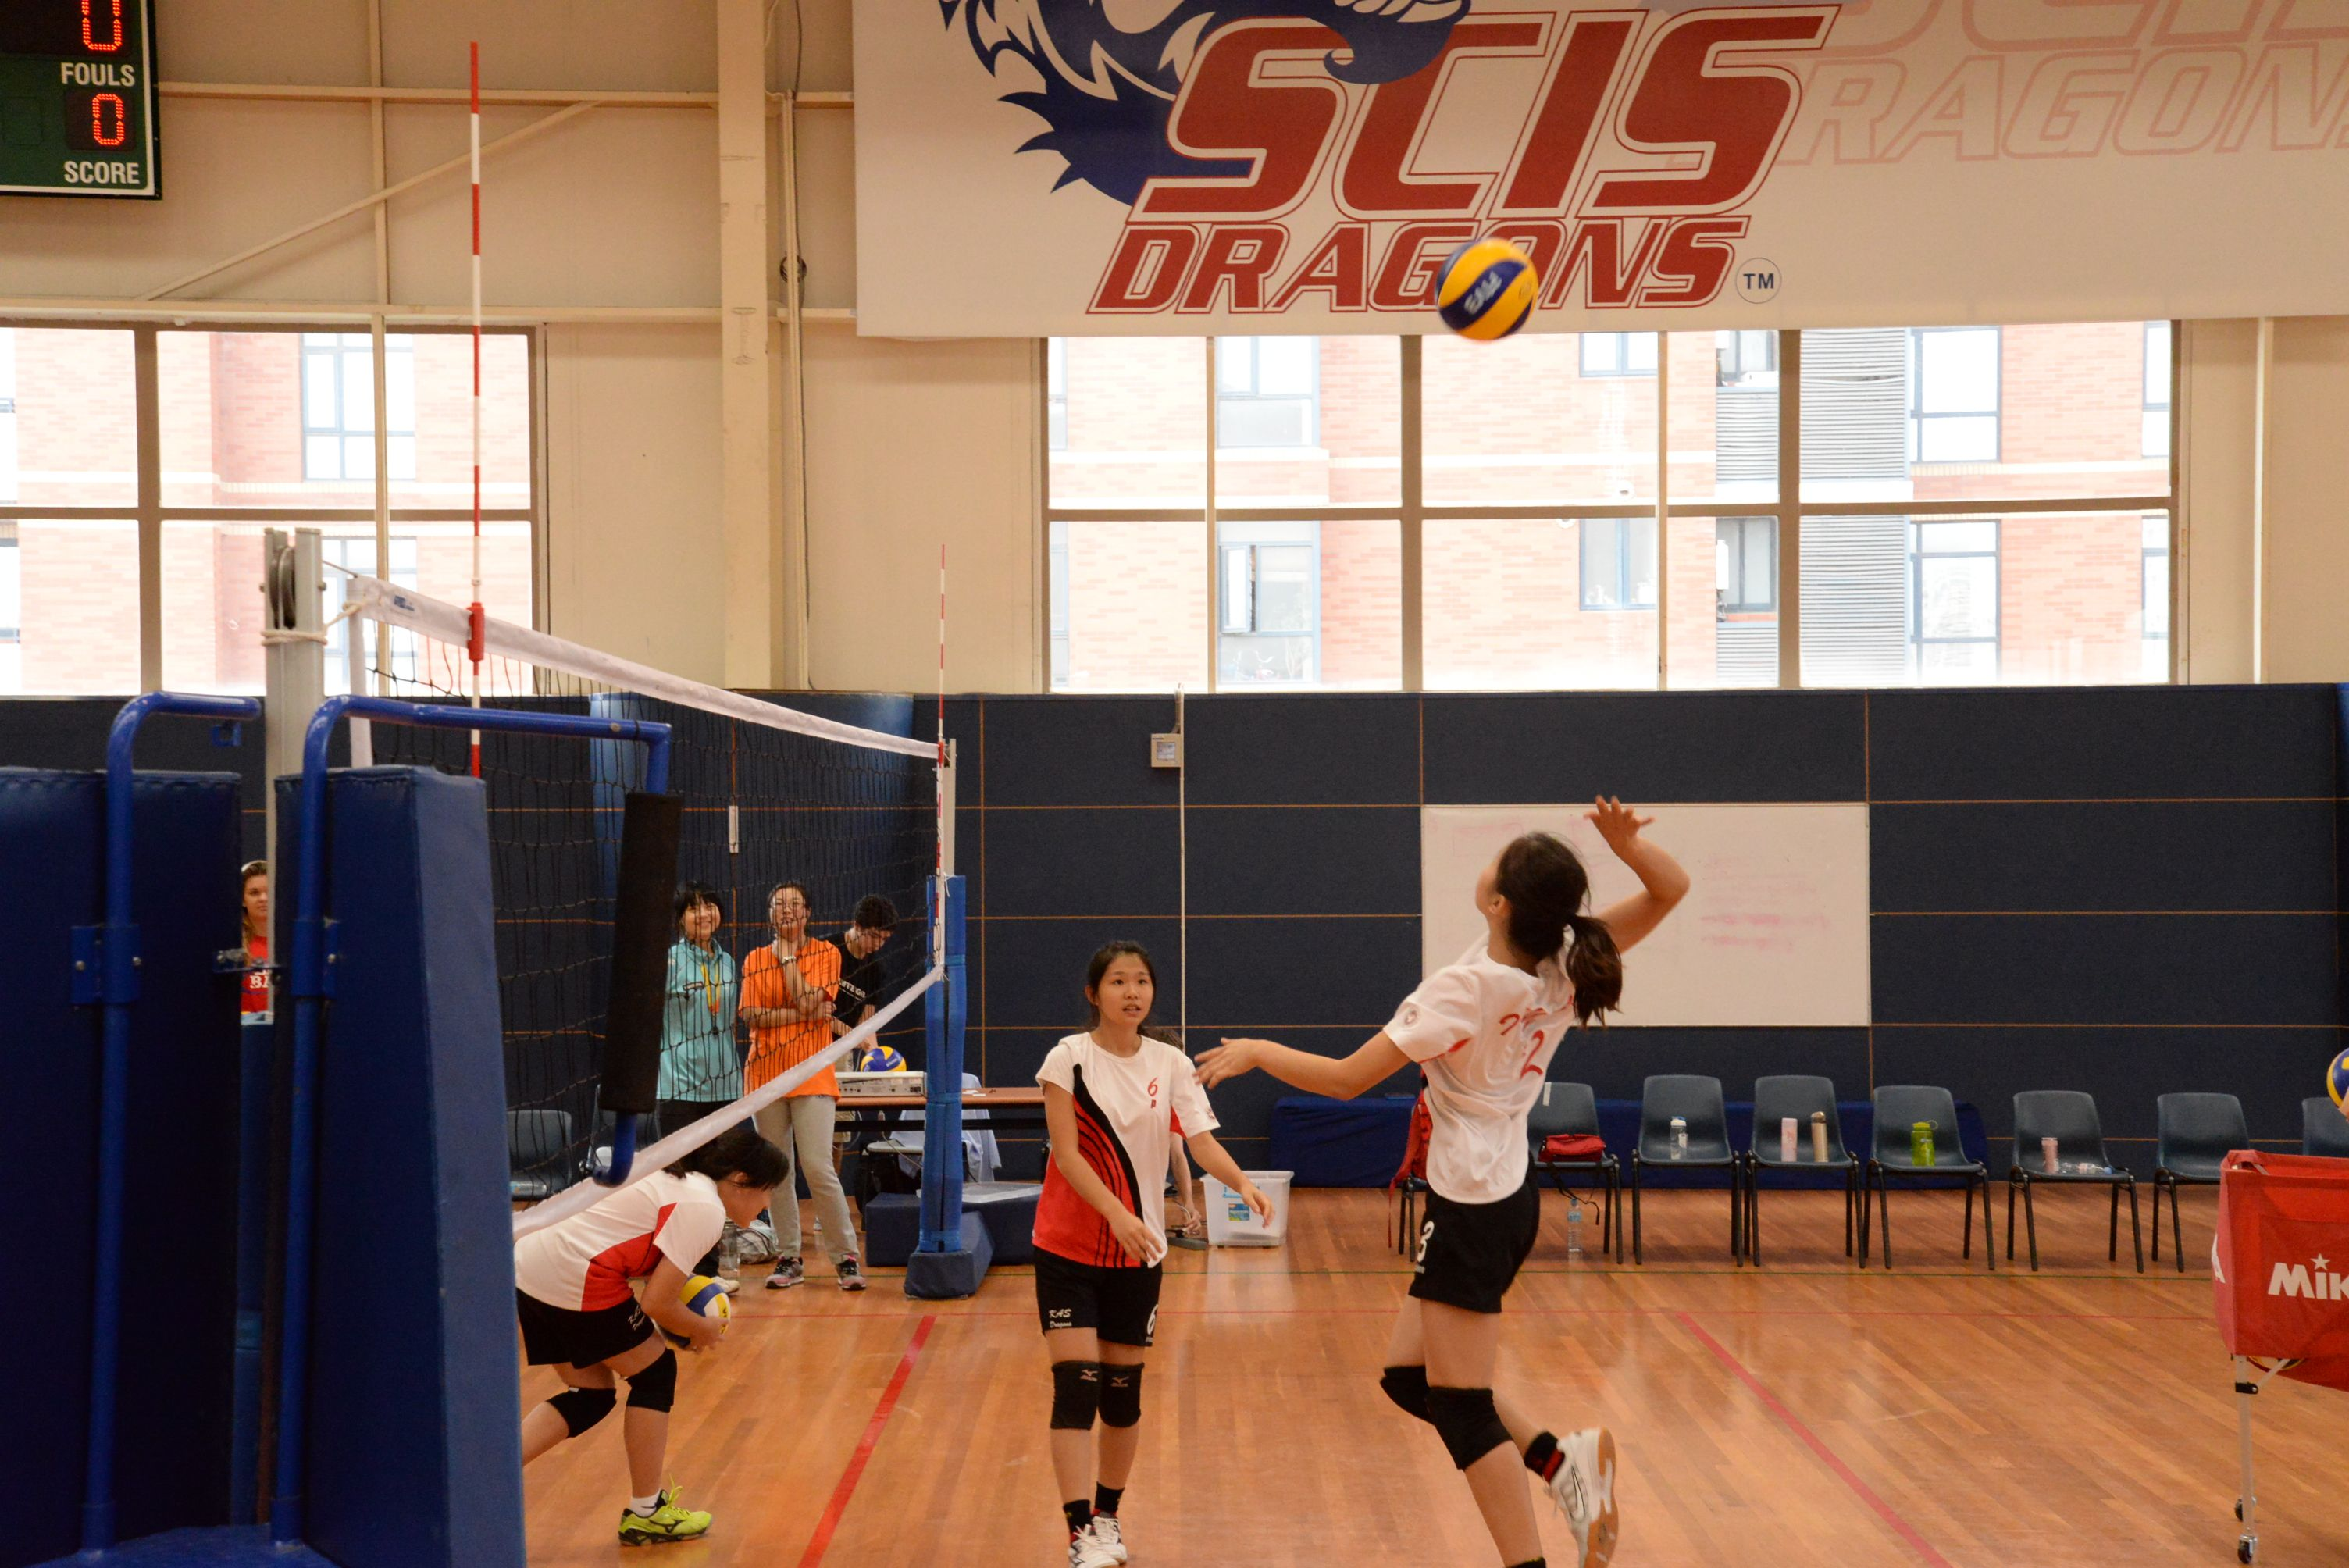 This Was Me Spiking A Volleyball In Acamis It Was My First Time Going To An Acmis Trip And Also My First Year Of Learning The Method Athlete Improve Learning